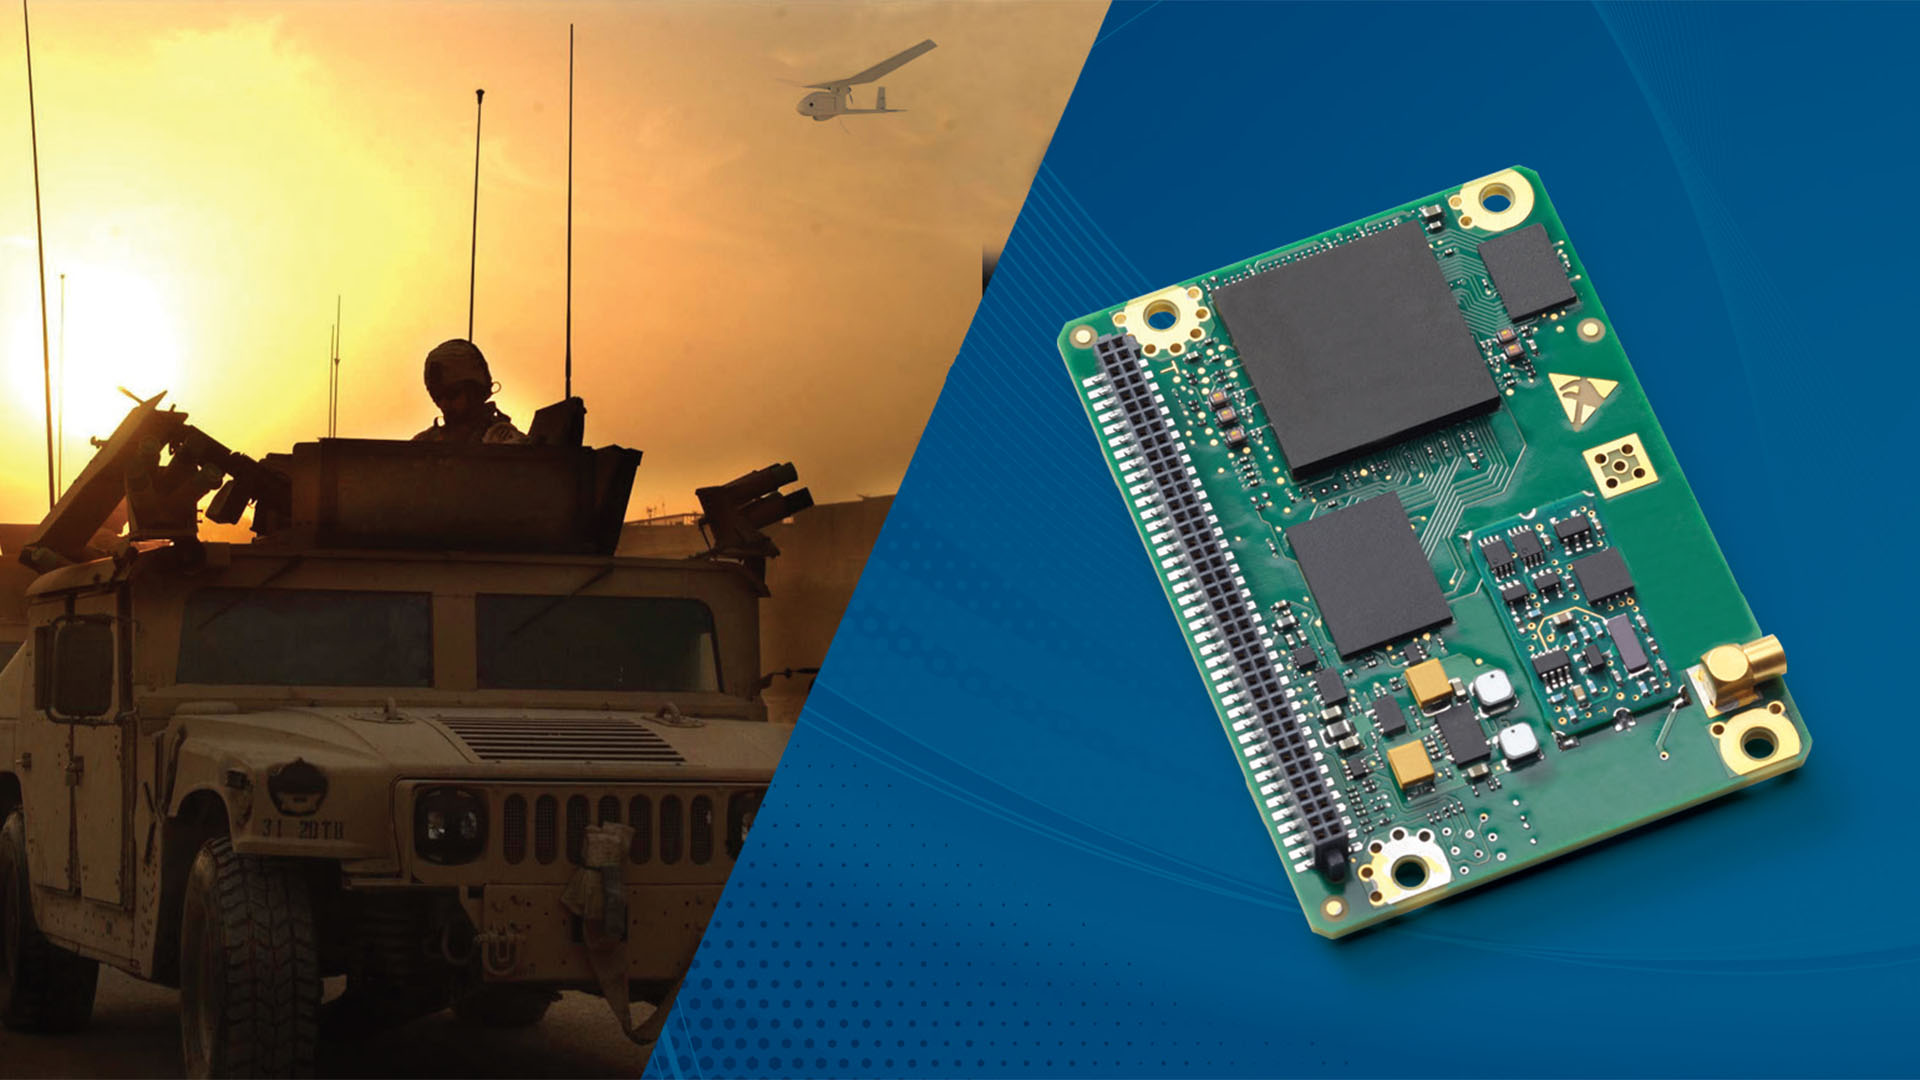 Split image of MPE-S board and army truck with the sunset behind it.